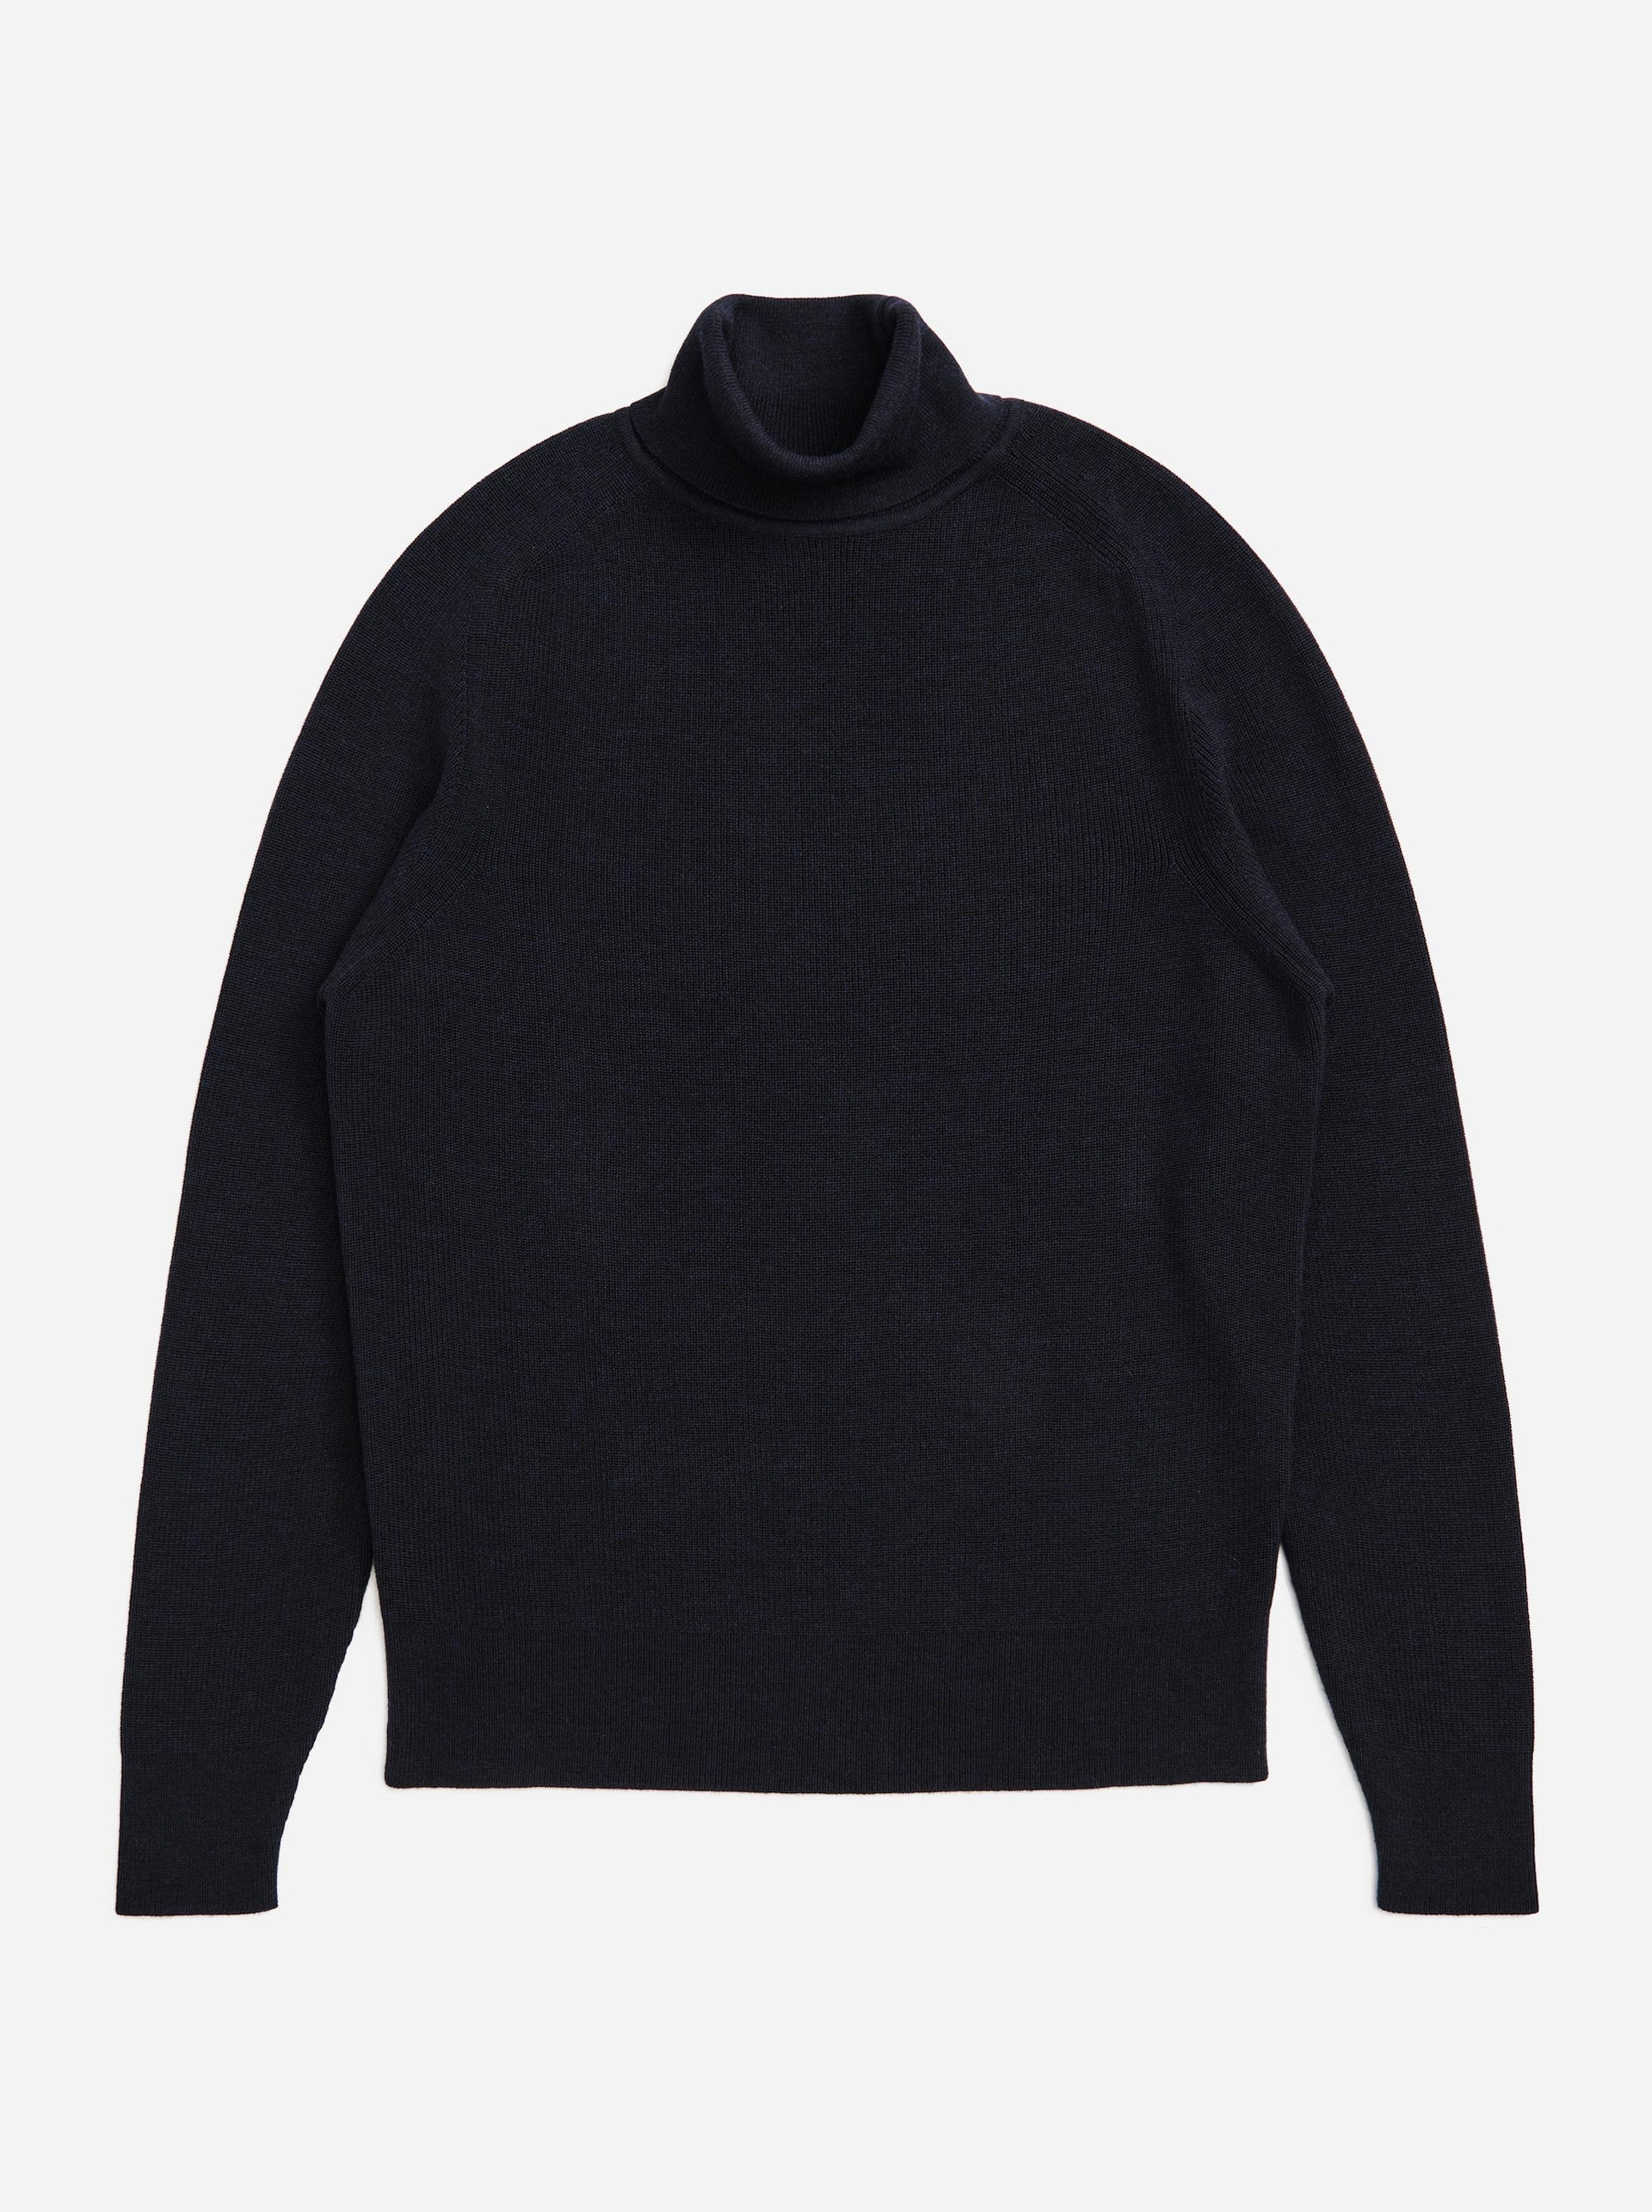 The Turtleneck Sweater - Blue